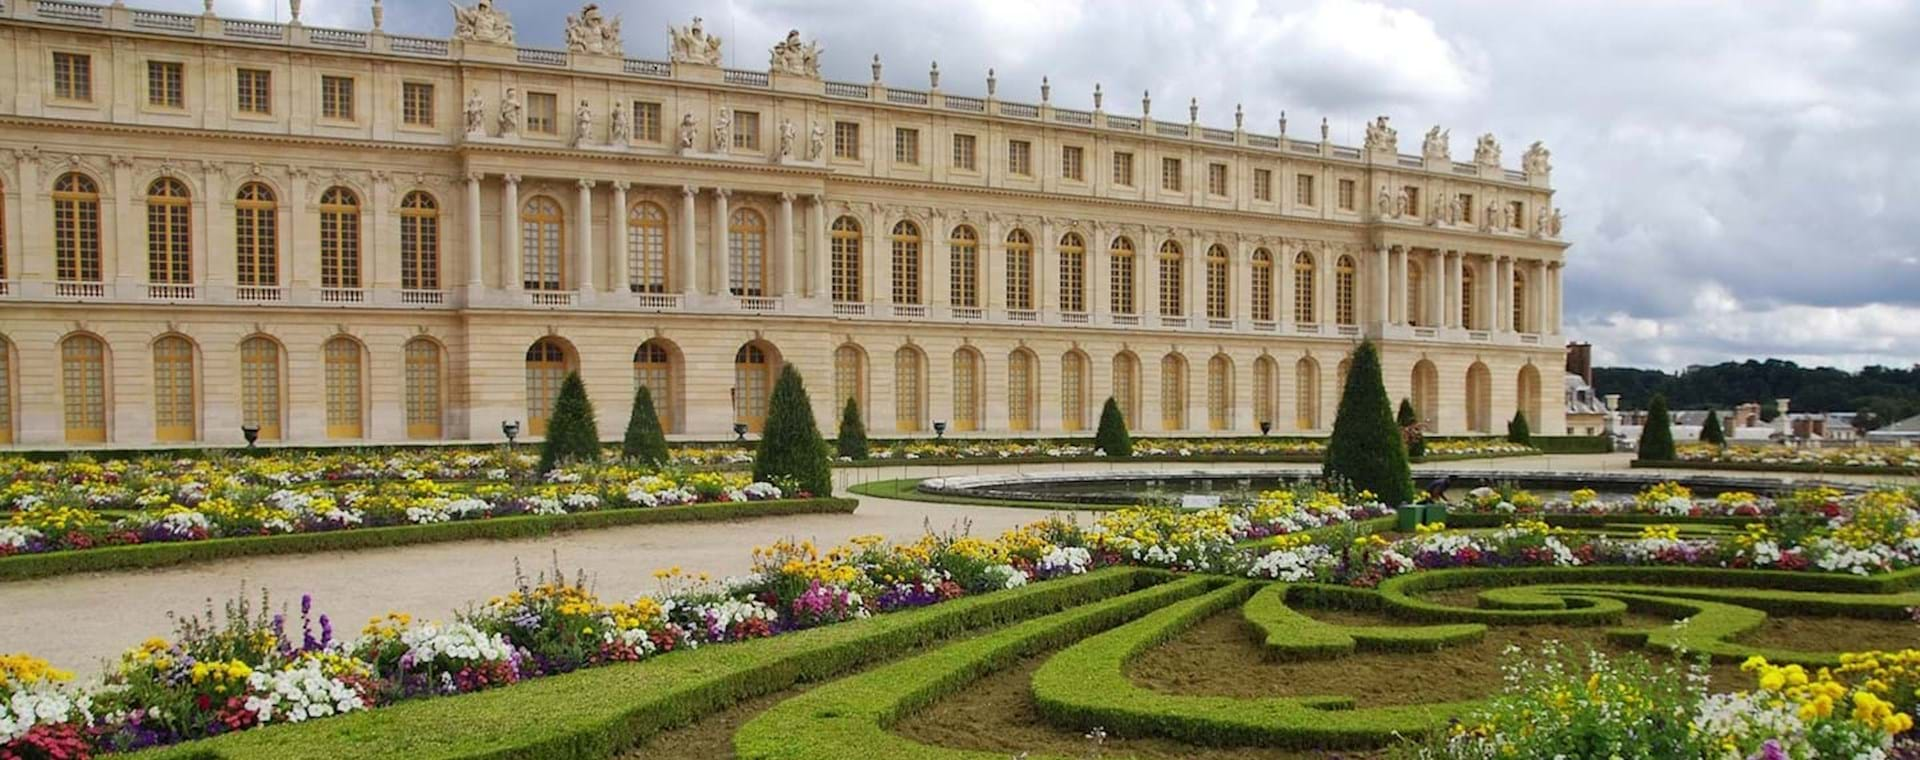 Versailles Palace & Gardens Tour with Fountain Show from Versailles